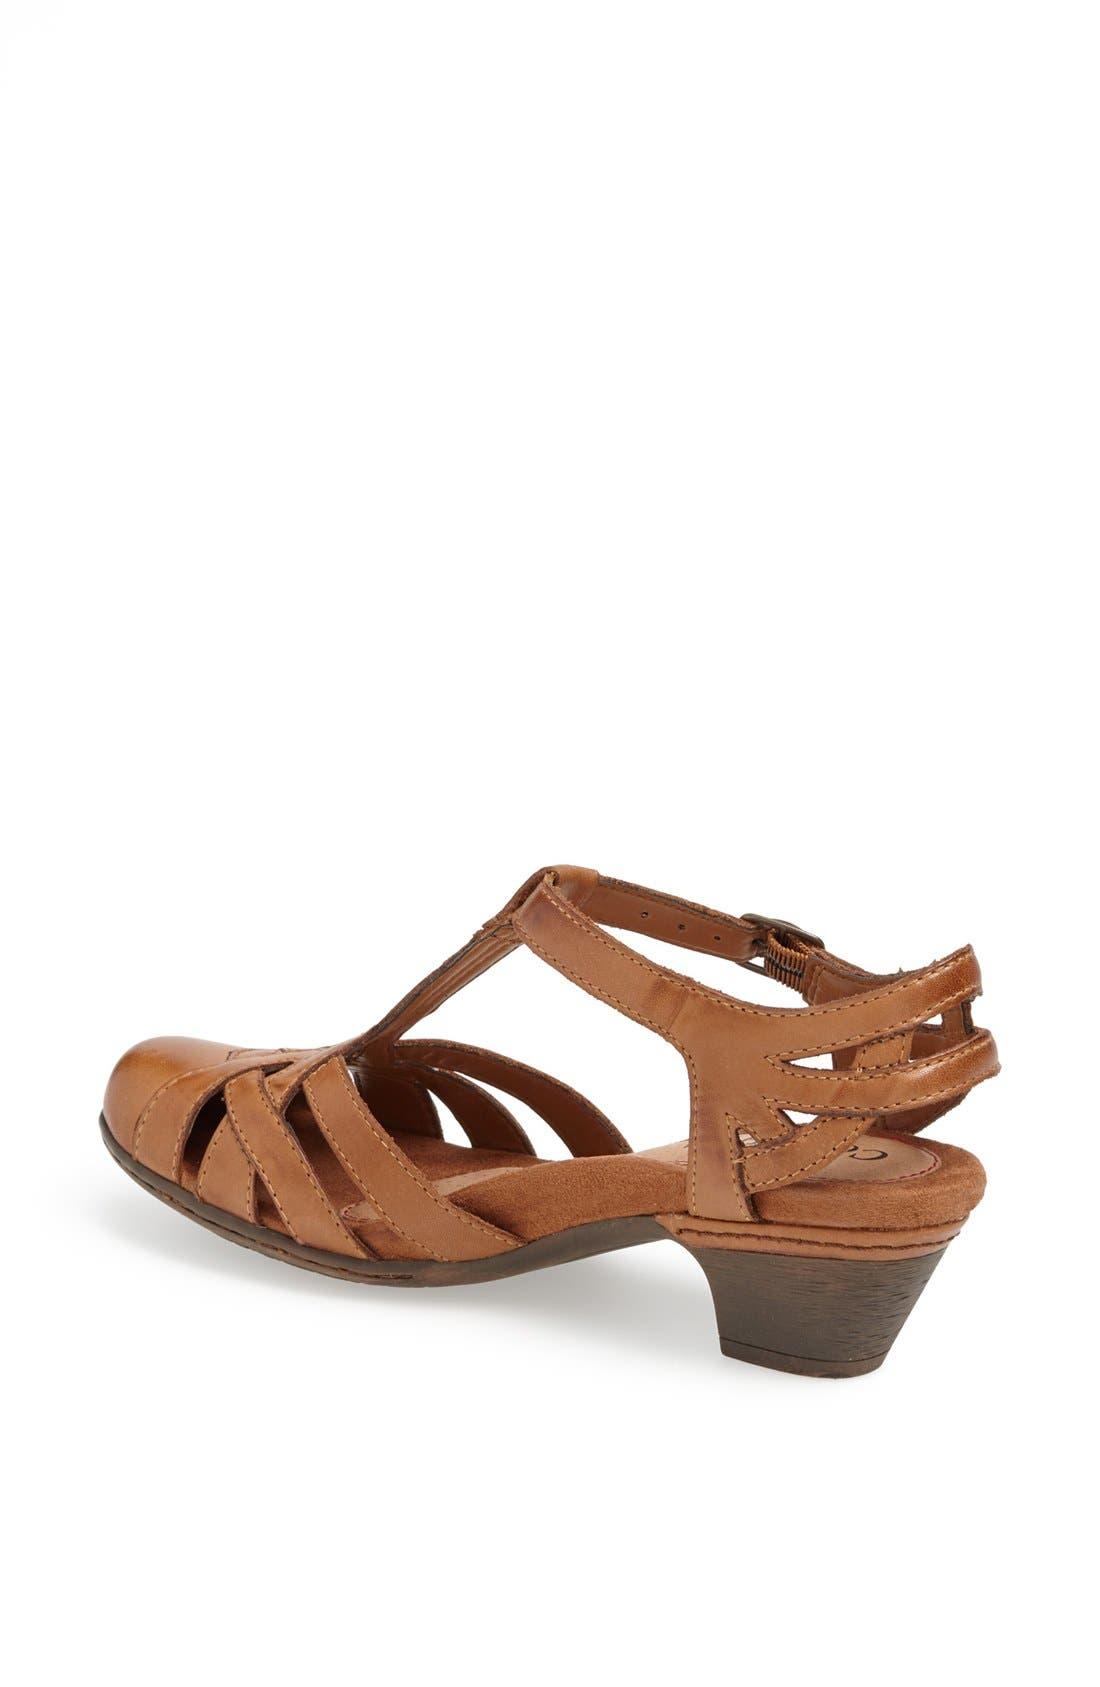 'Aubrey' Sandal,                             Alternate thumbnail 57, color,